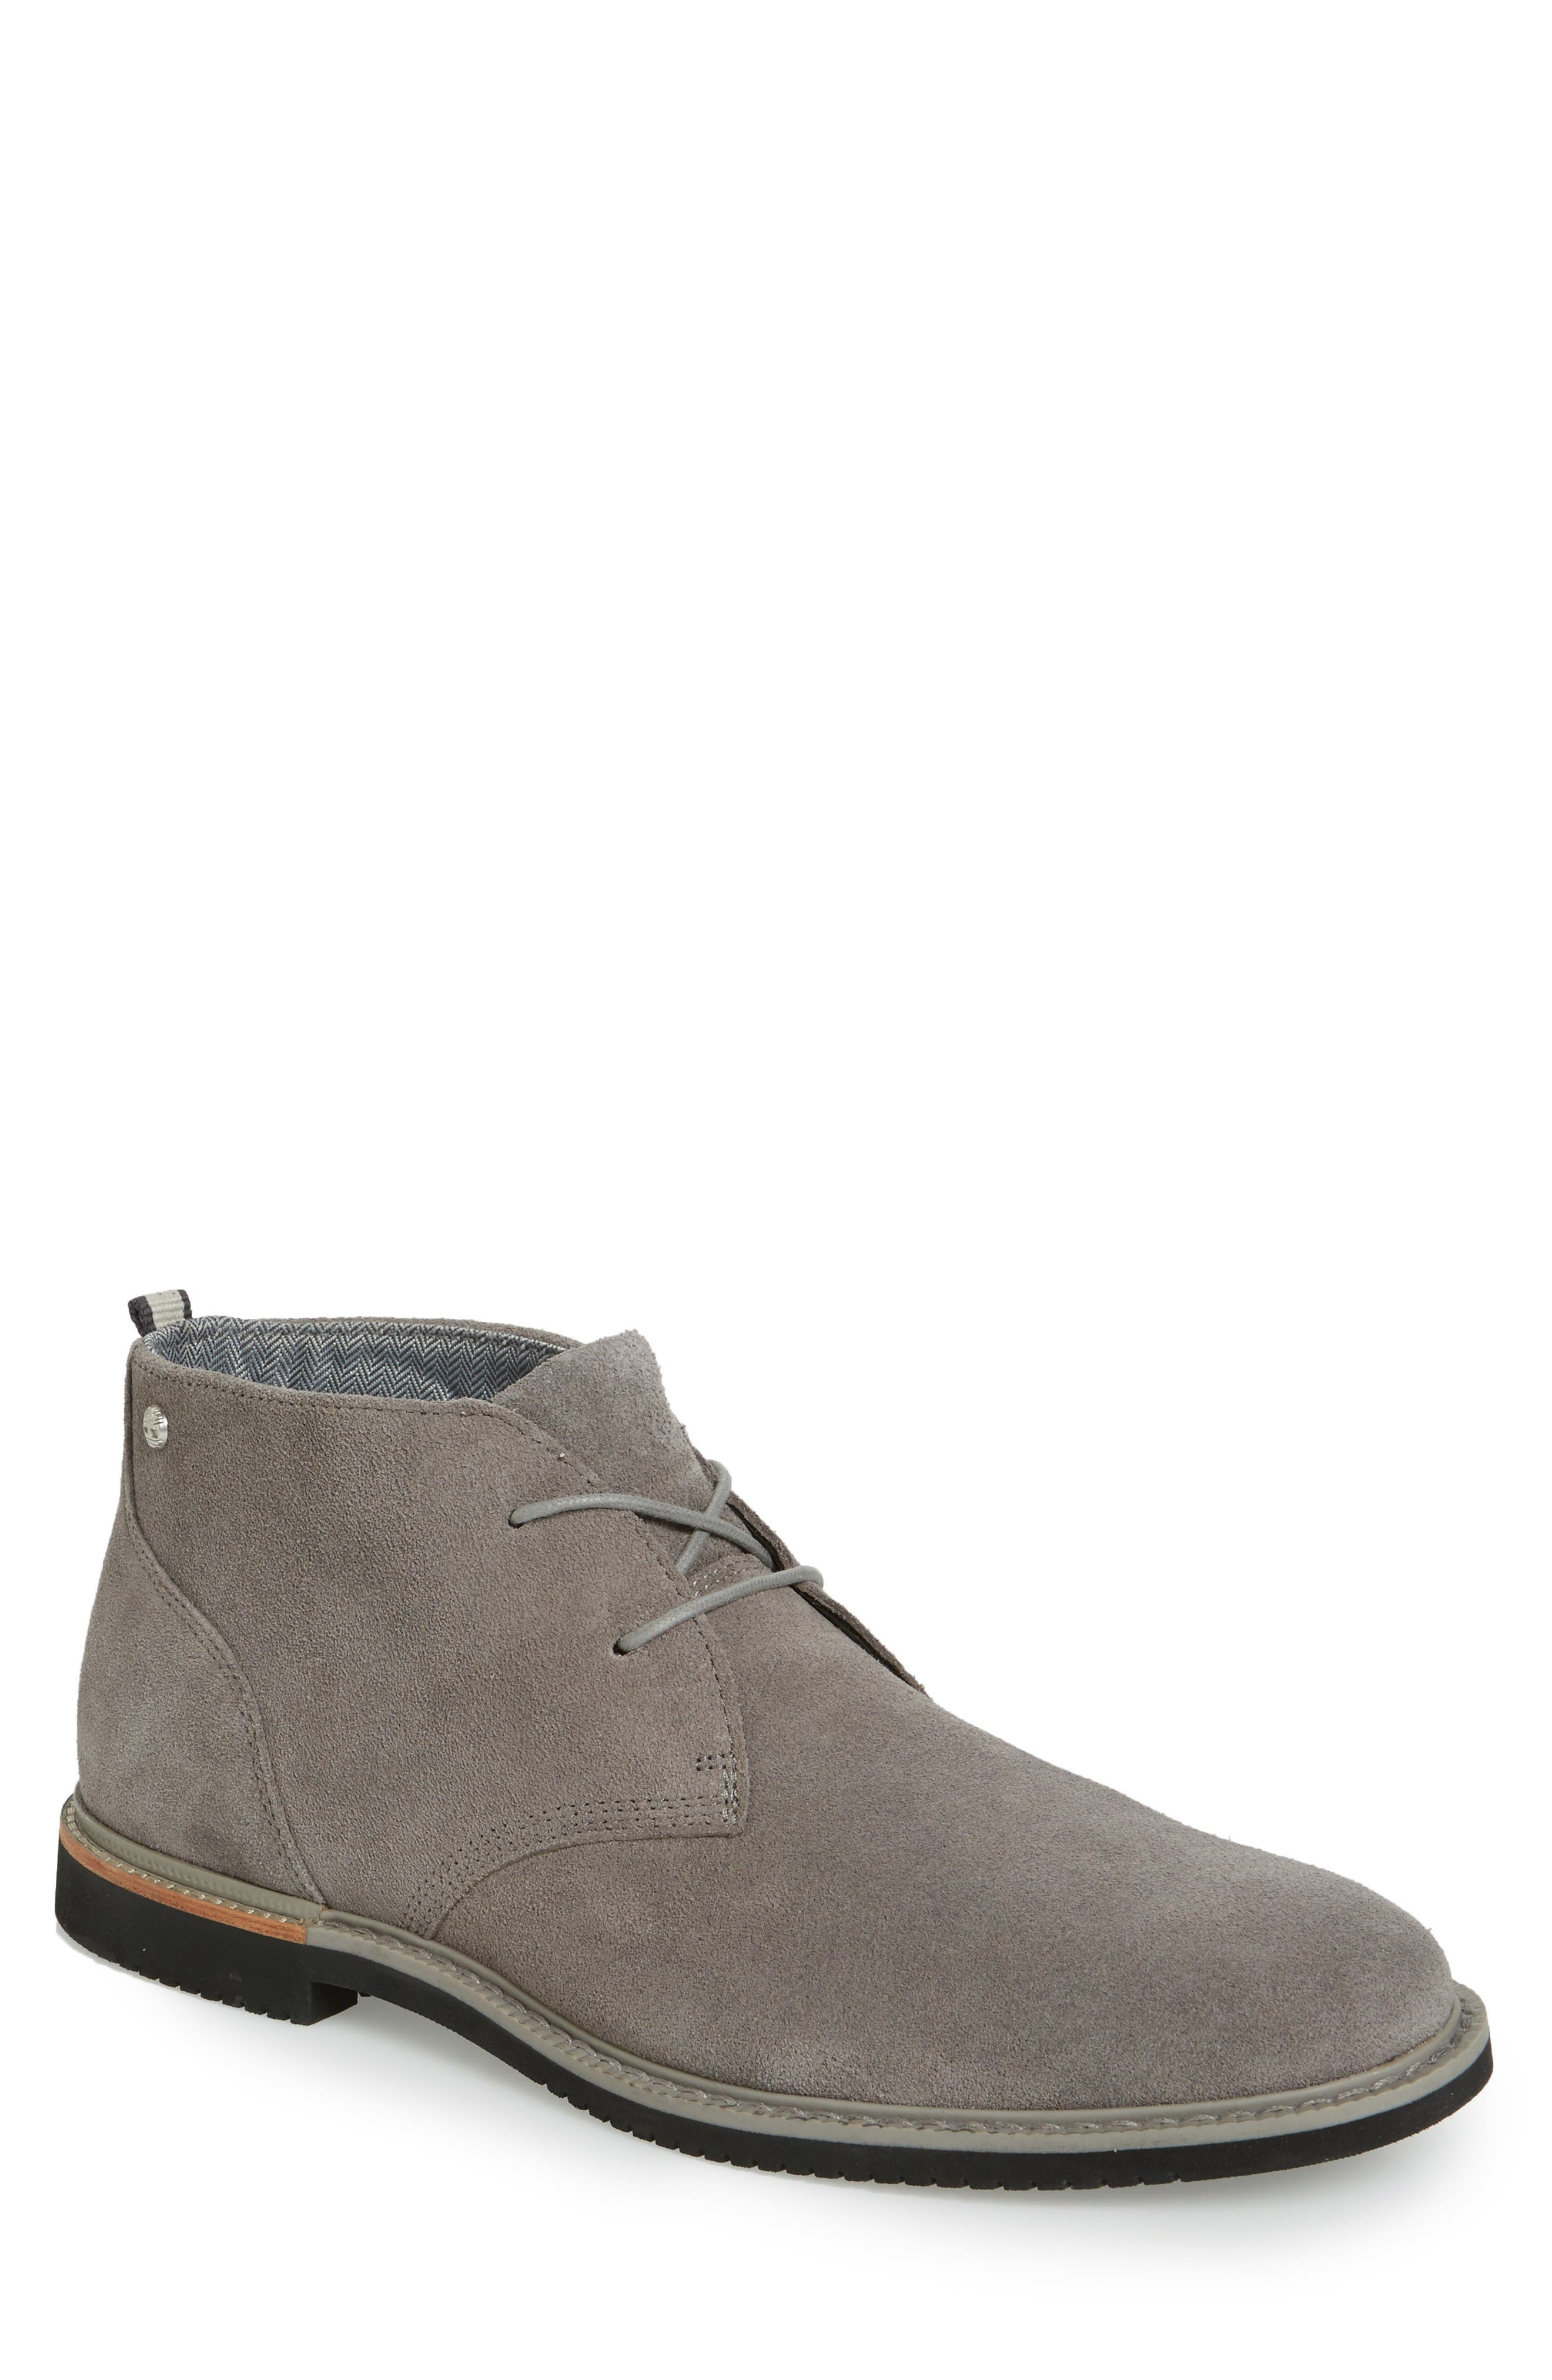 Alternate Image 1 Selected - Timberland Brook Park Chukka Boot (Men)